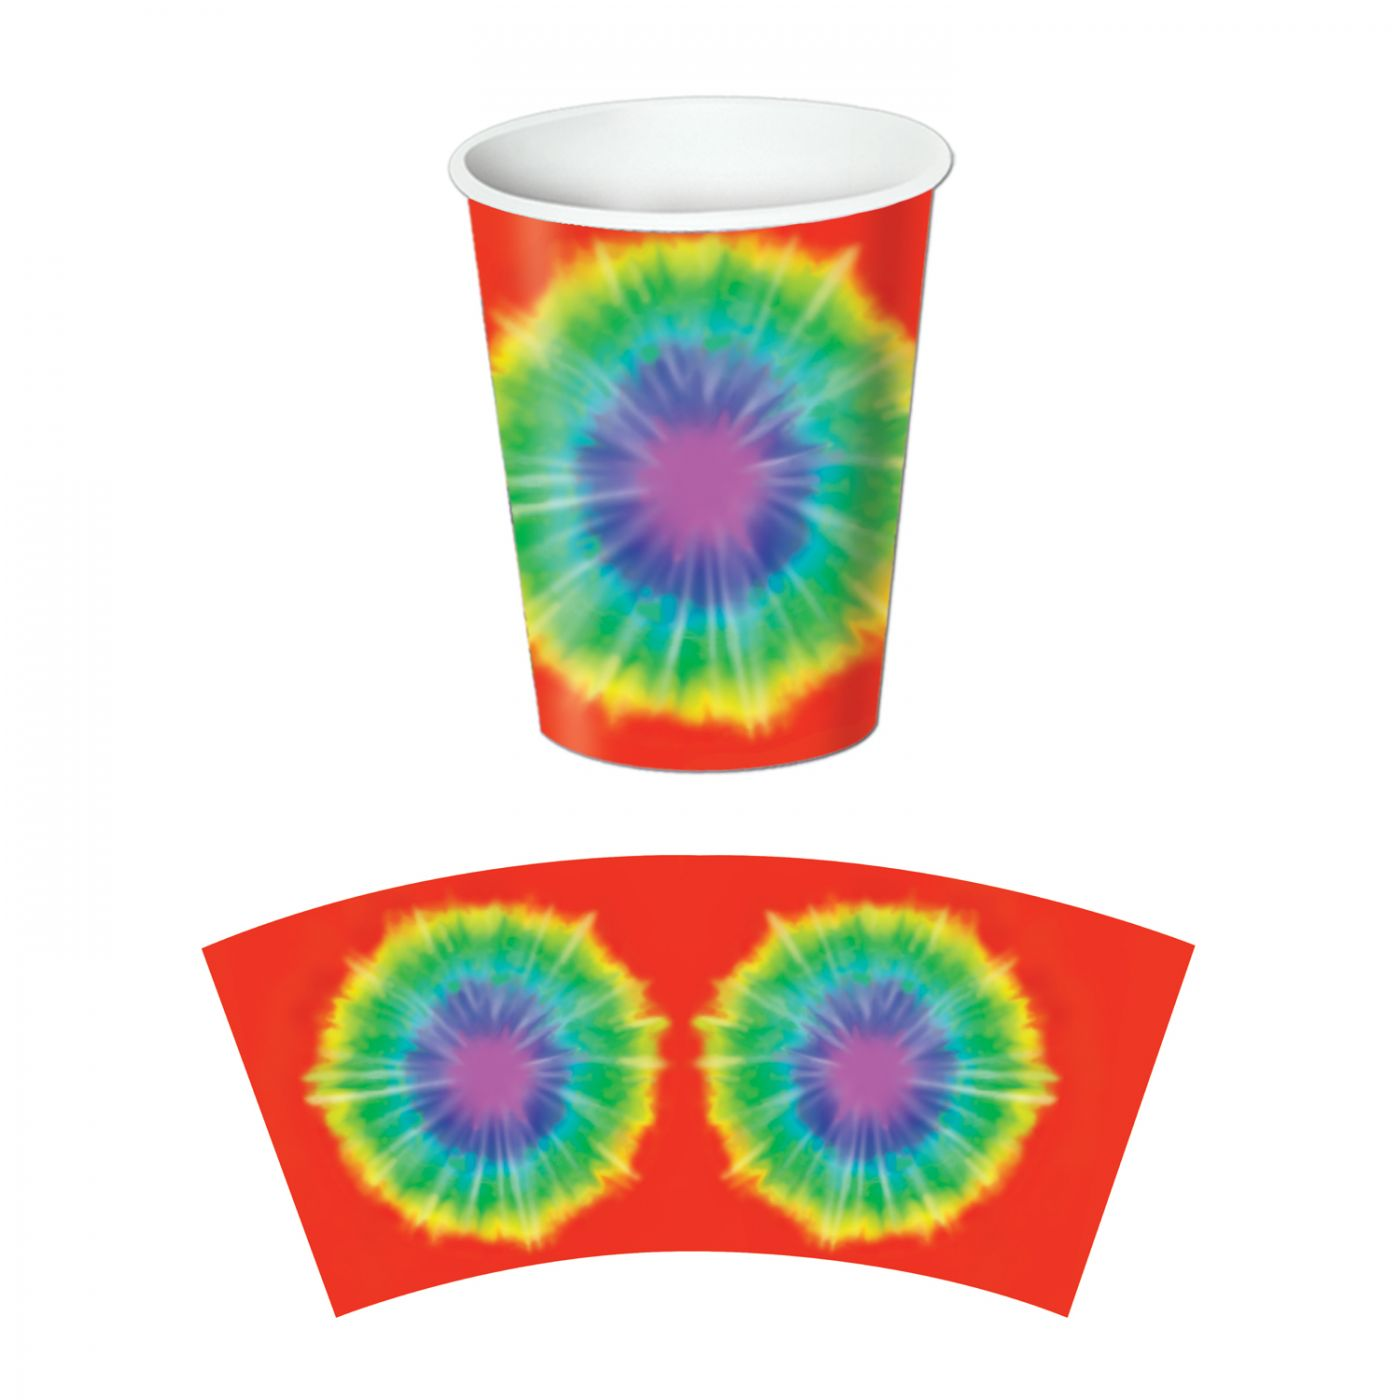 Tie-Dyed Beverage Cups image